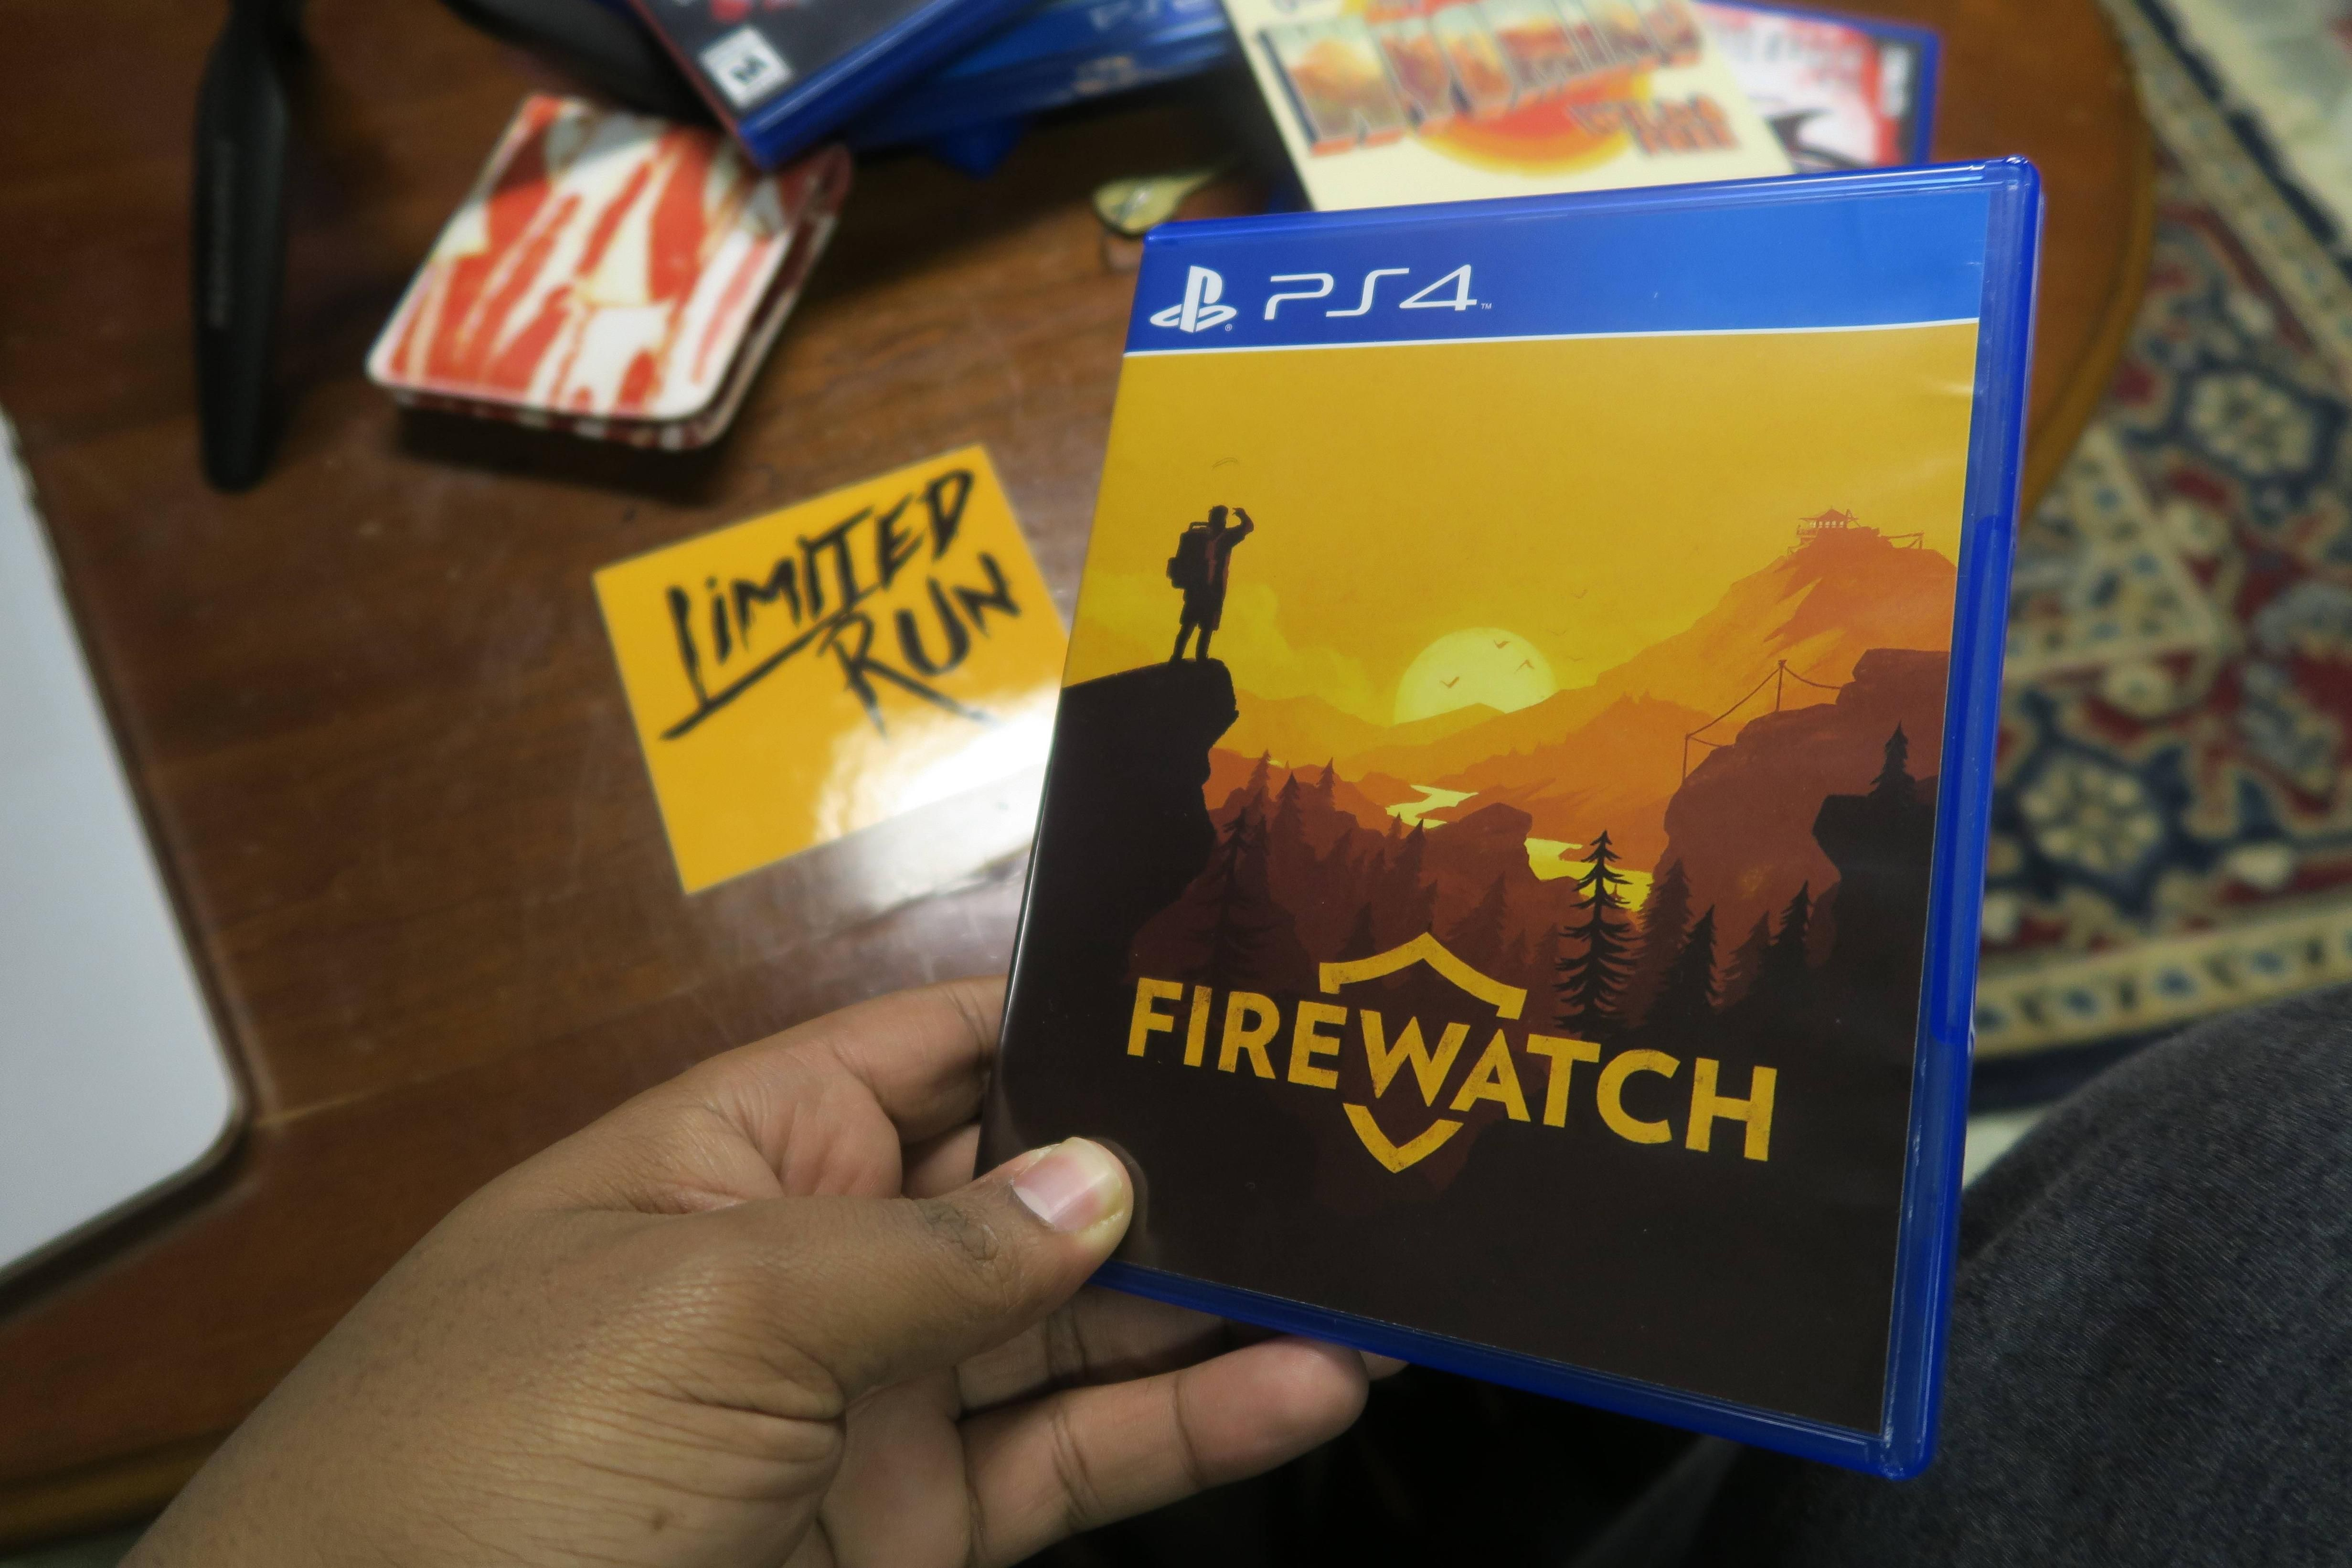 My Limited Run of Firewatch heard about it from Reddit now posting about it!